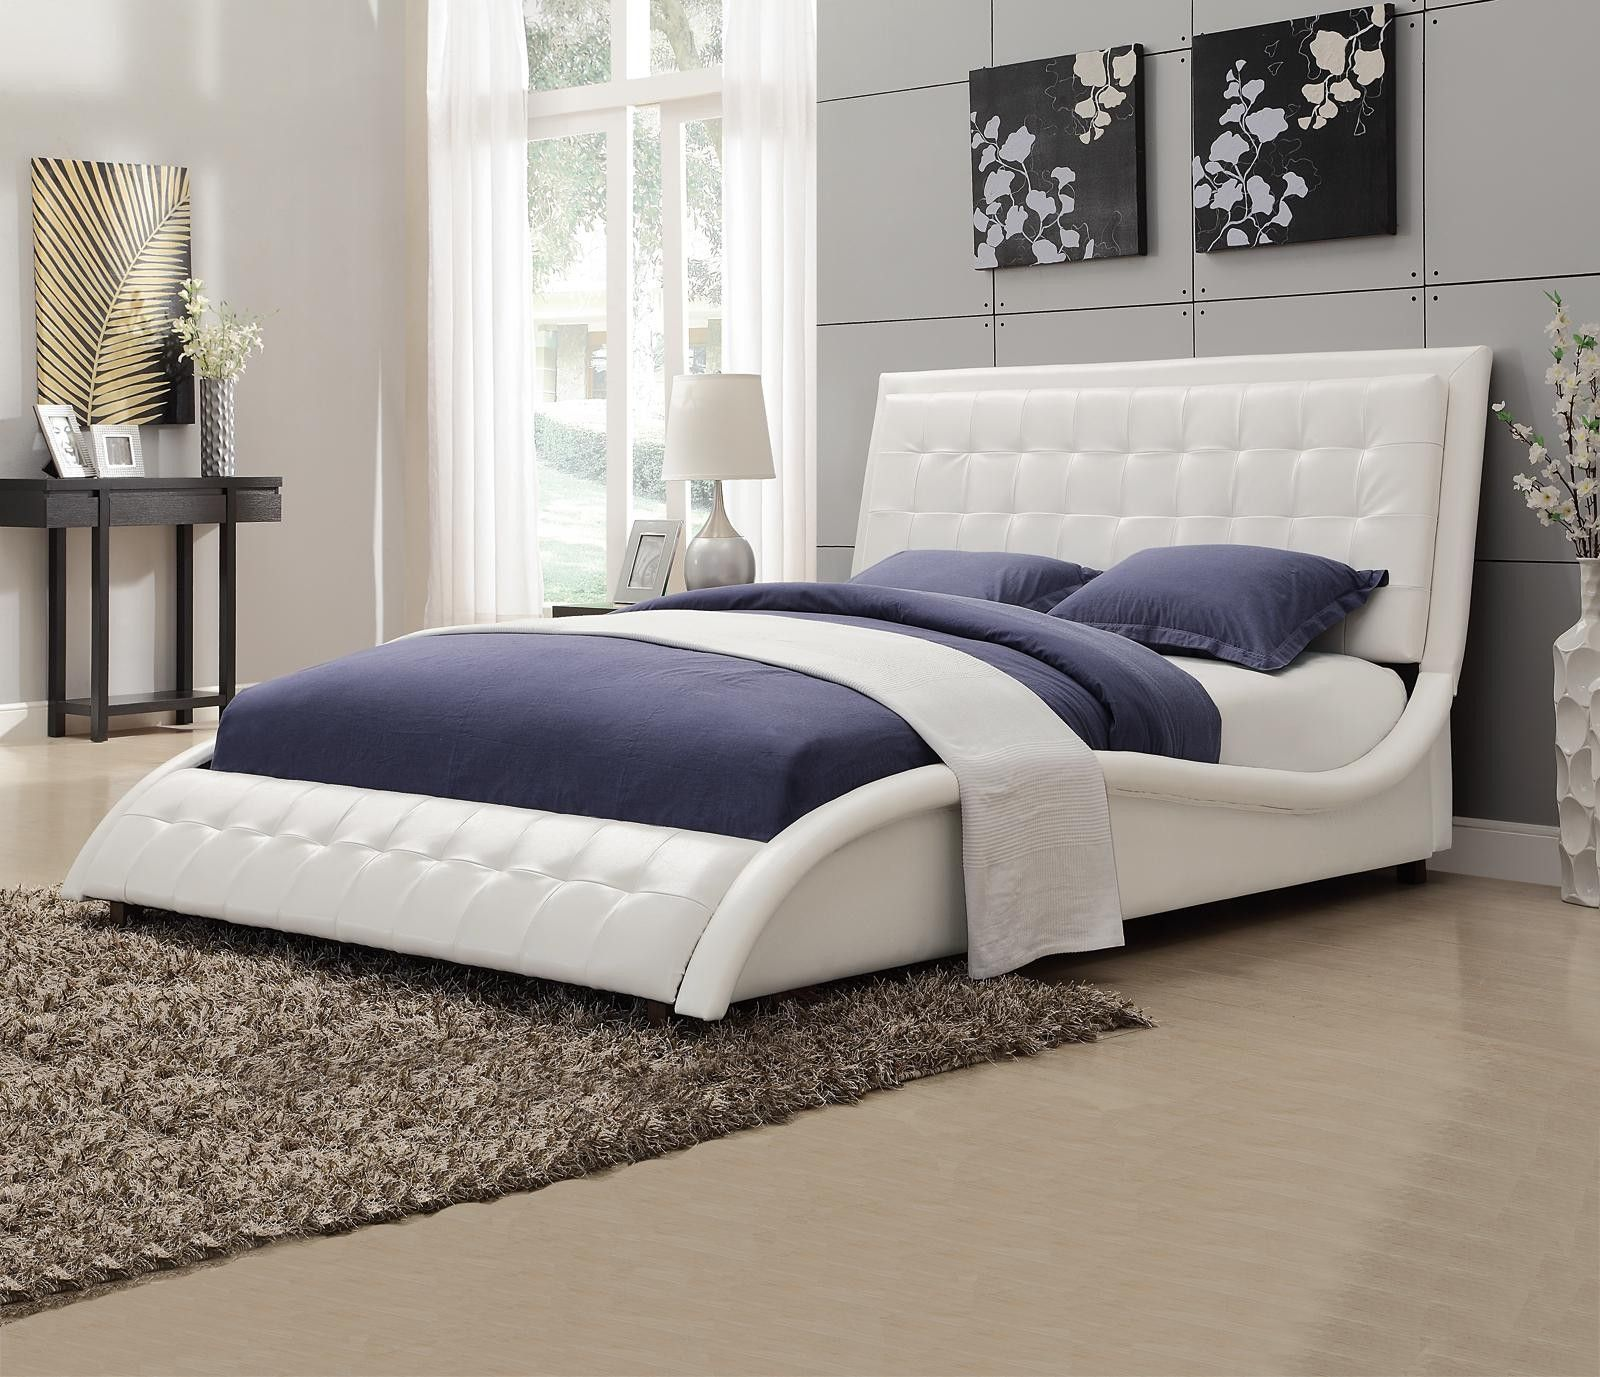 How Terrific Ideas Queen Upholstered Bed With Interesting Storage